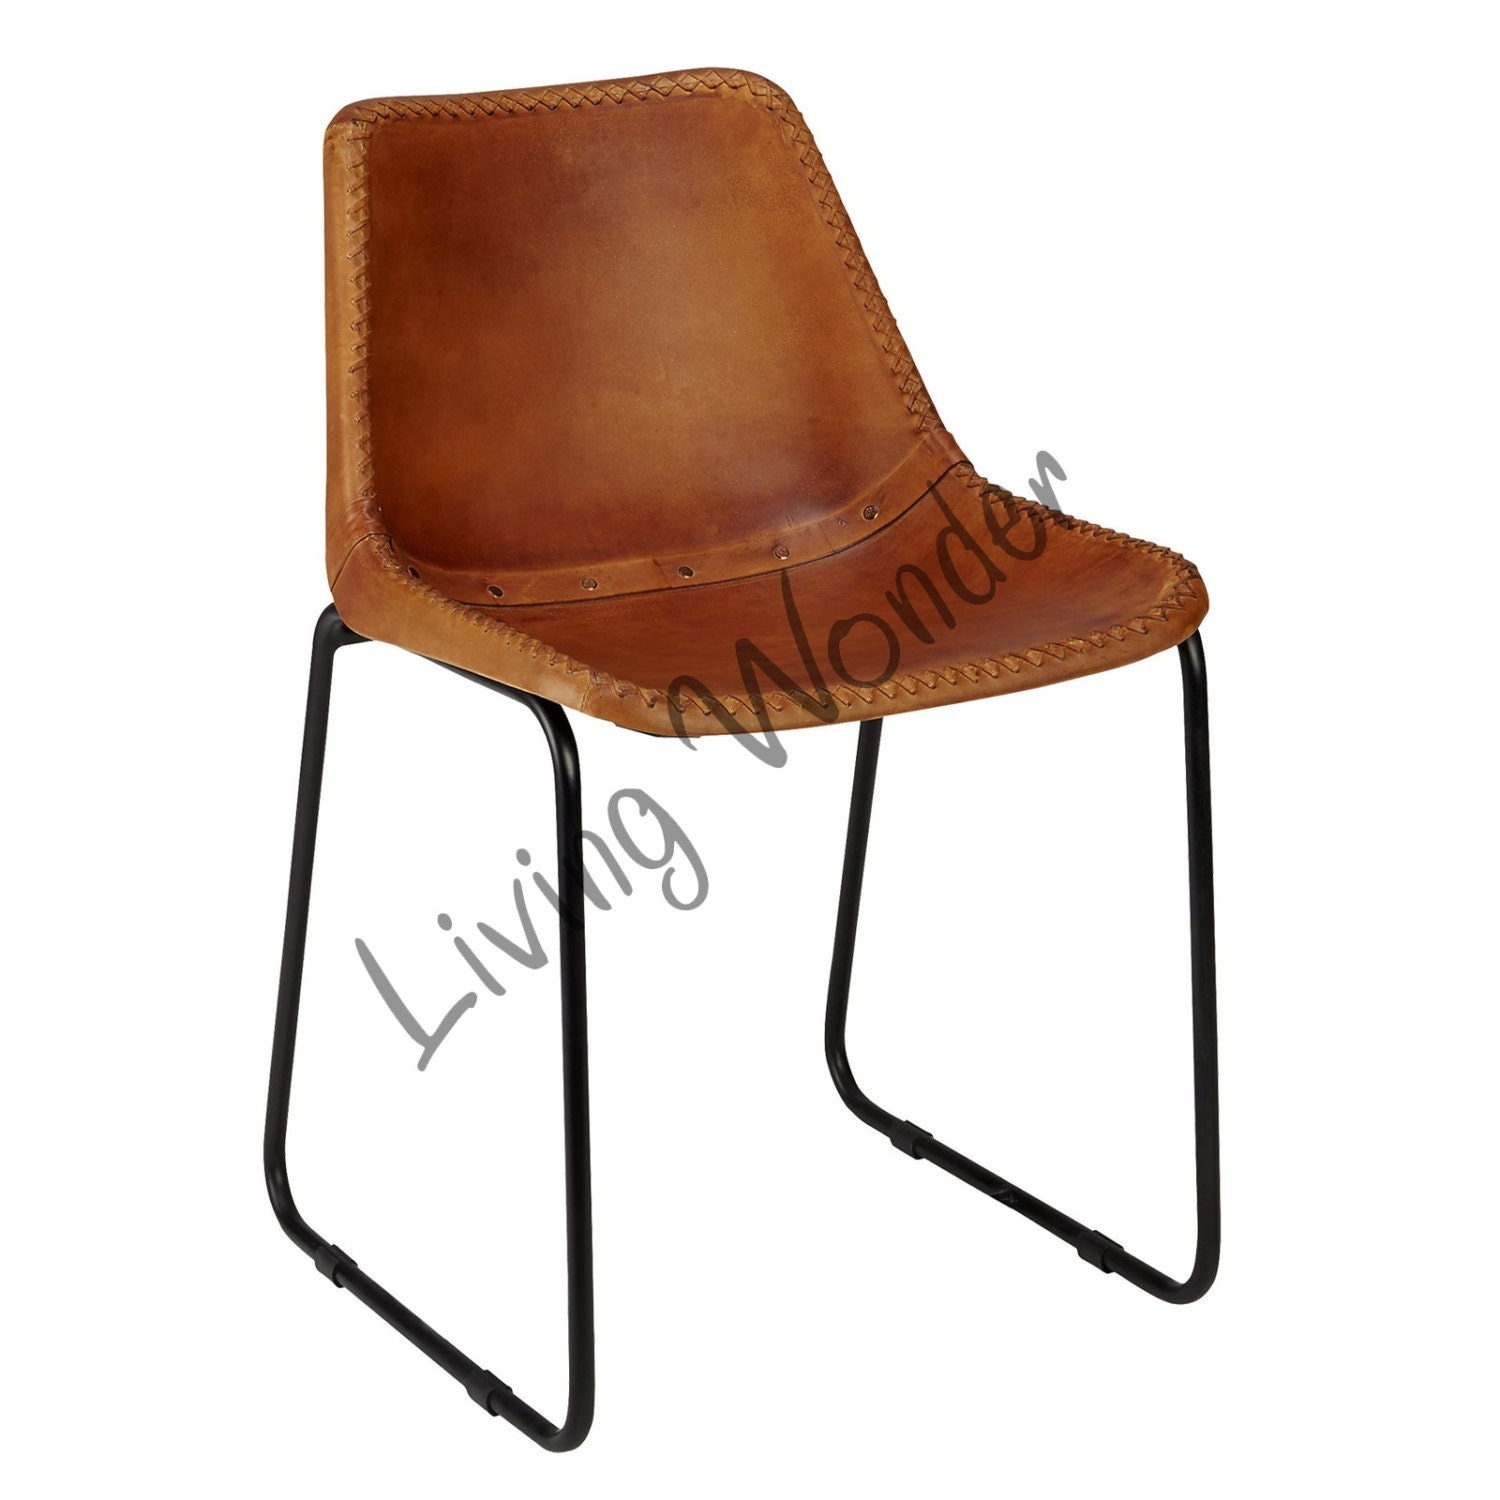 Vintage Look Leather Dining Chair Leather Office By LivingWonder